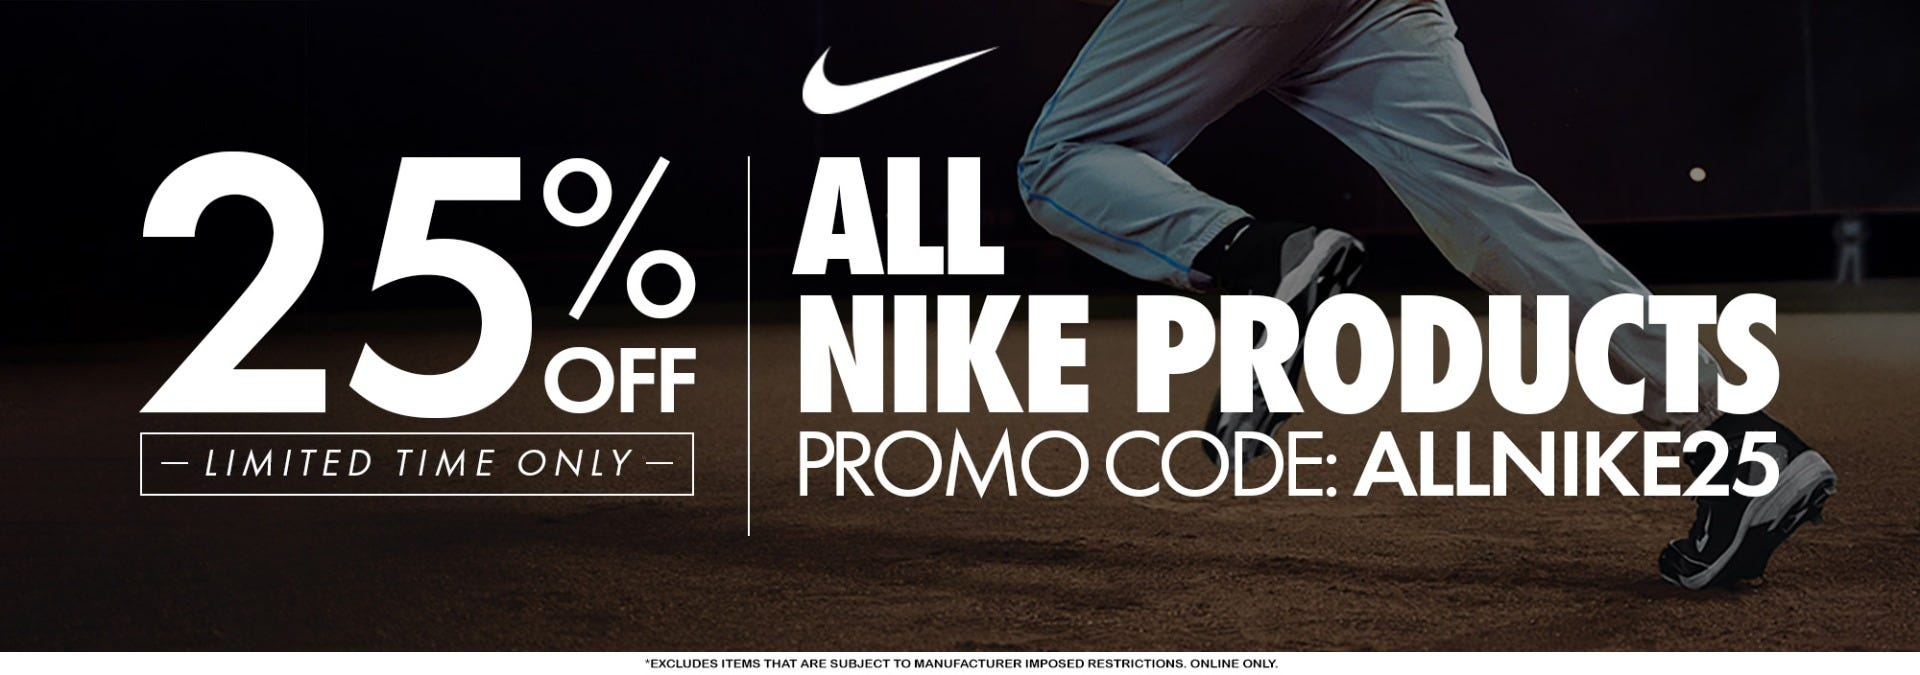 Take an extra 25% off all Nike products